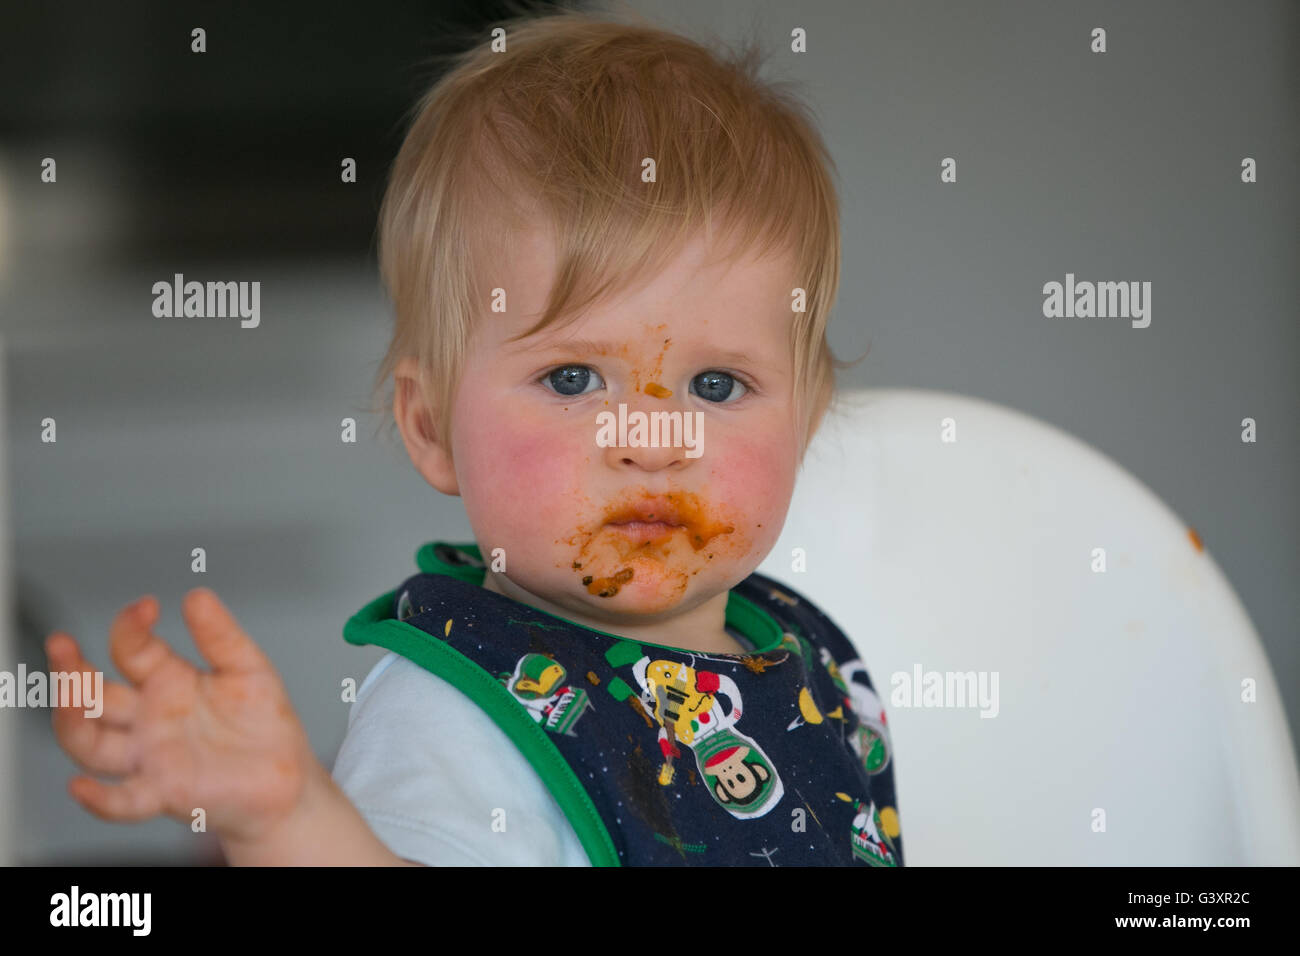 Toddler getting messy whilst eating dinner - Stock Image